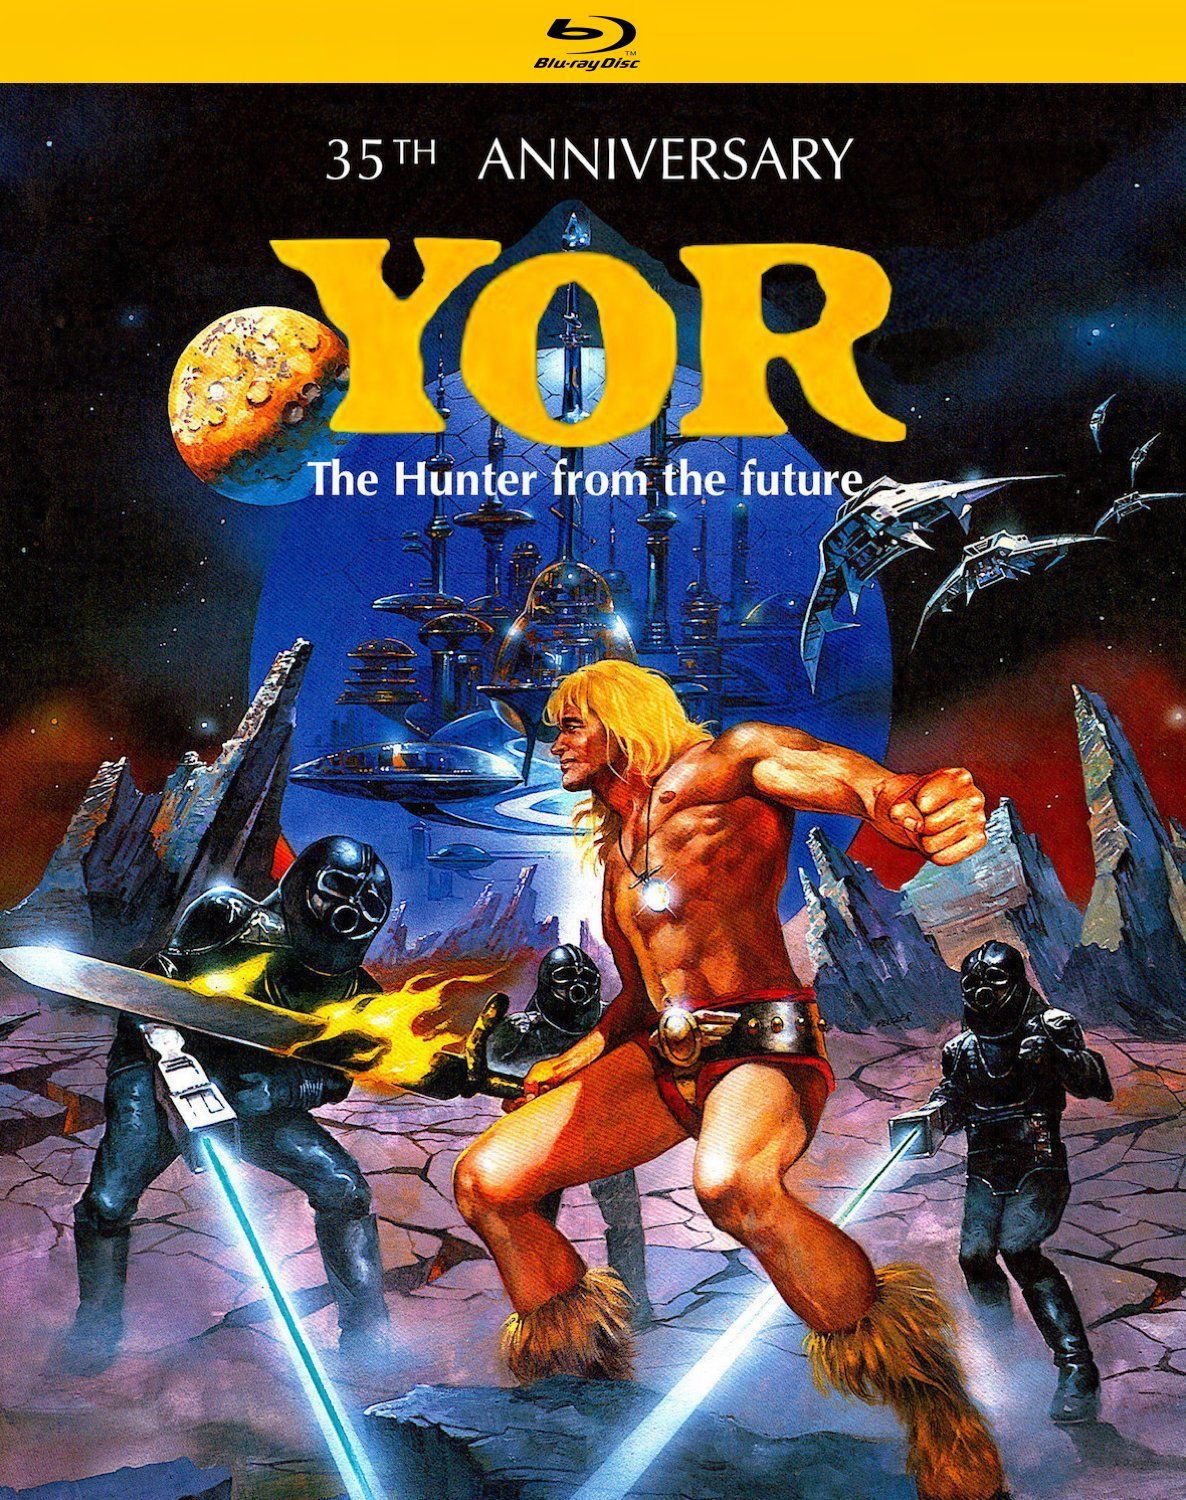 YOR THE HUNTER FROM THE FUTURE 35TH ANNIVERSARY EDITION